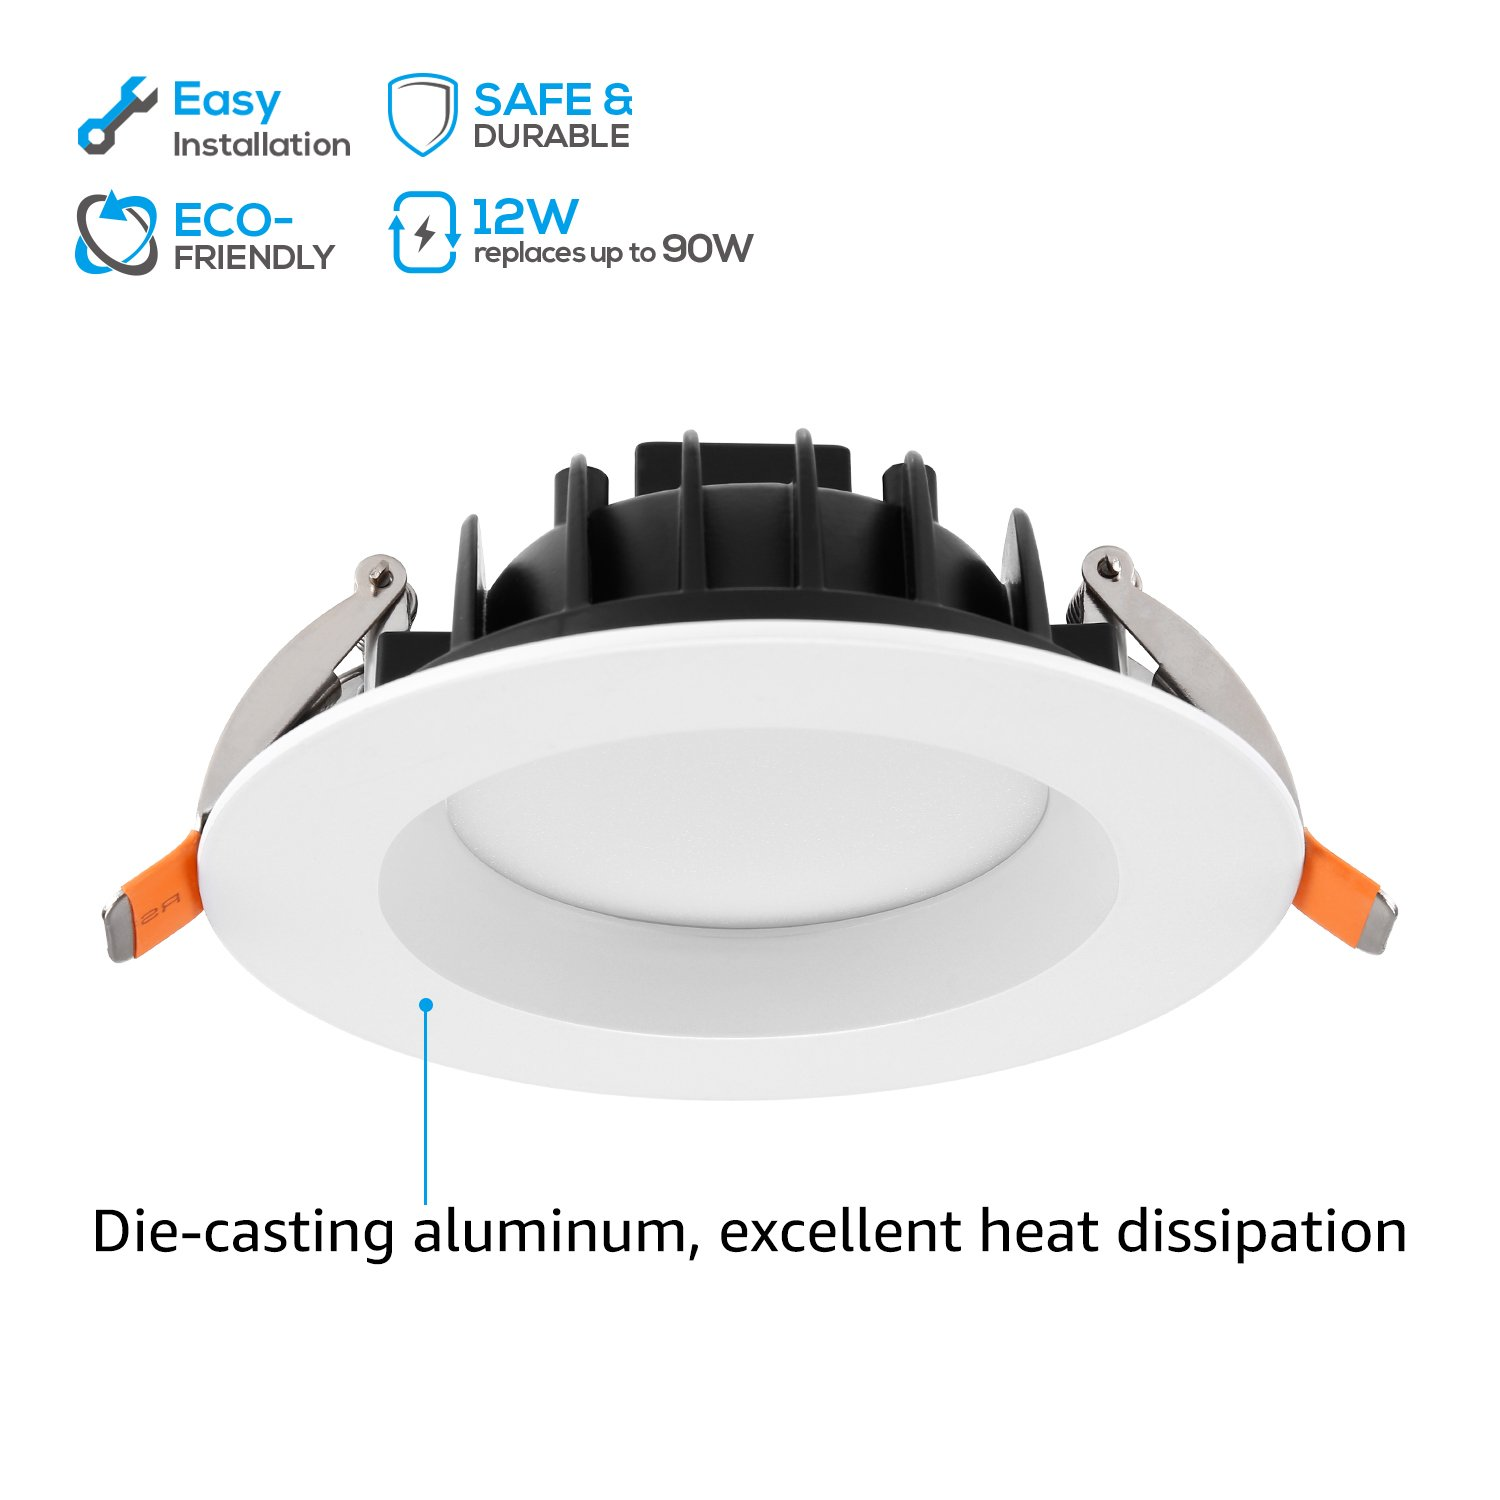 "Amazon.com: TORCHSTAR 12W 4"" Slim Recessed Ceiling Light with Junction Box, Dimmable Can Killer, IC Rated Airtight Downlight, 90W Equiv, ETL & Energy Star ..."